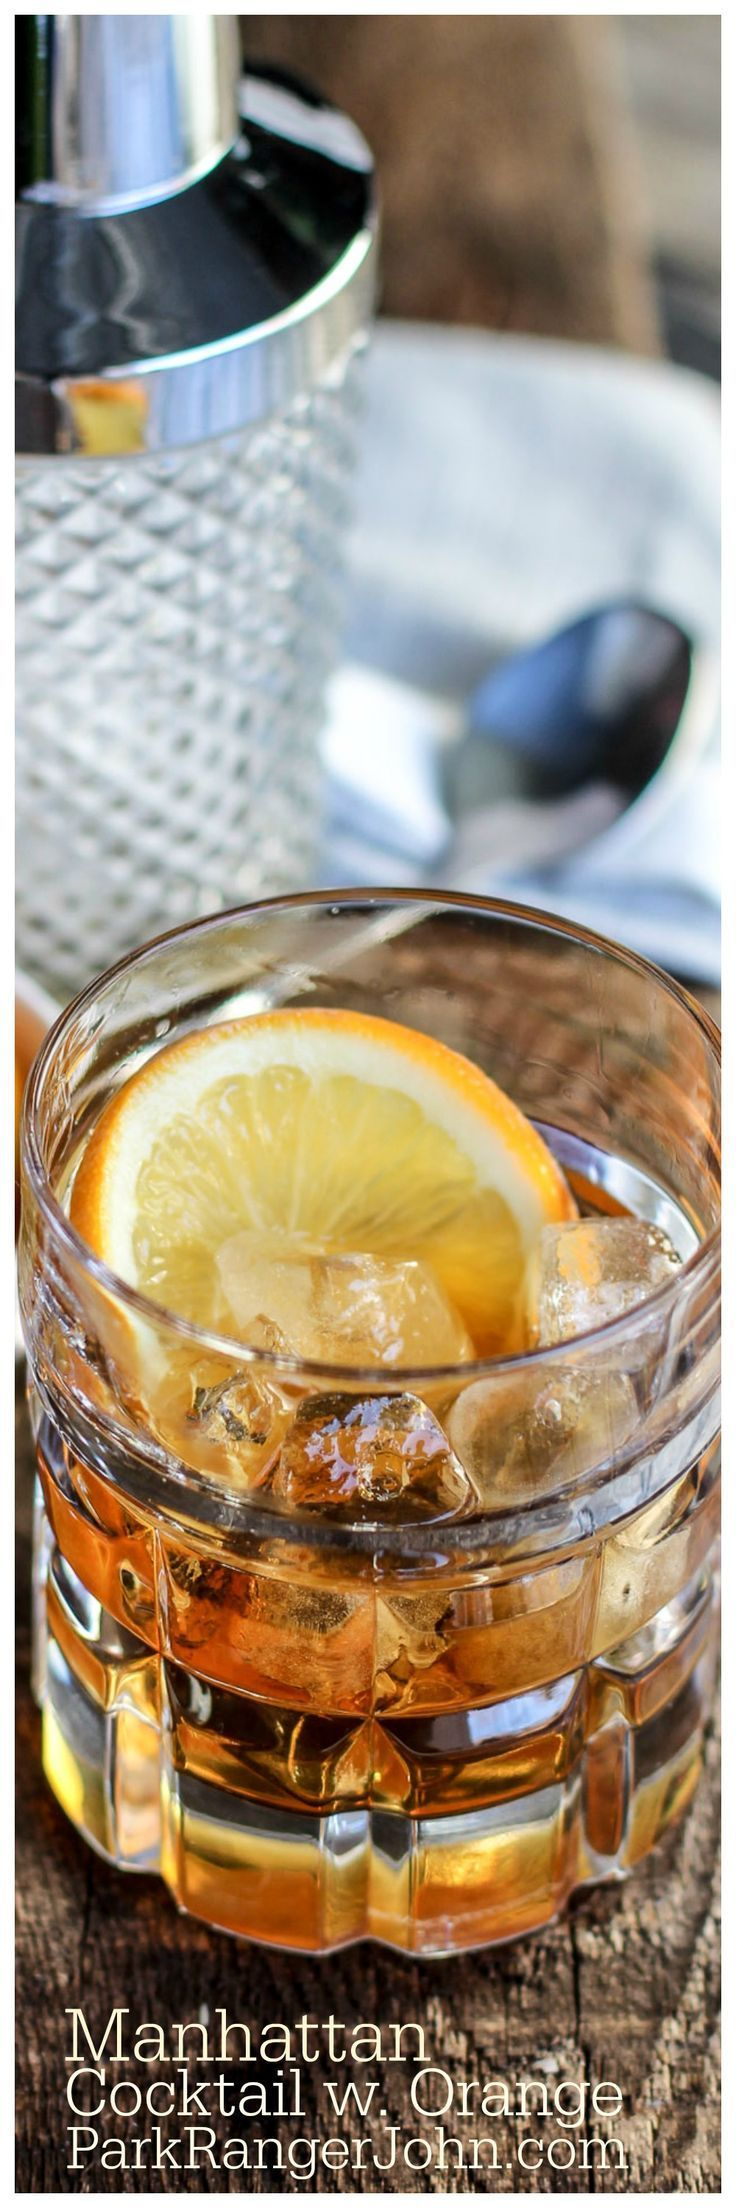 Classic Manhattan Cocktail Recipe with an Orange Twist that is perfect for happy hour, dinner parties, bachelor parties or guys night.  via @ParkRangerJohn